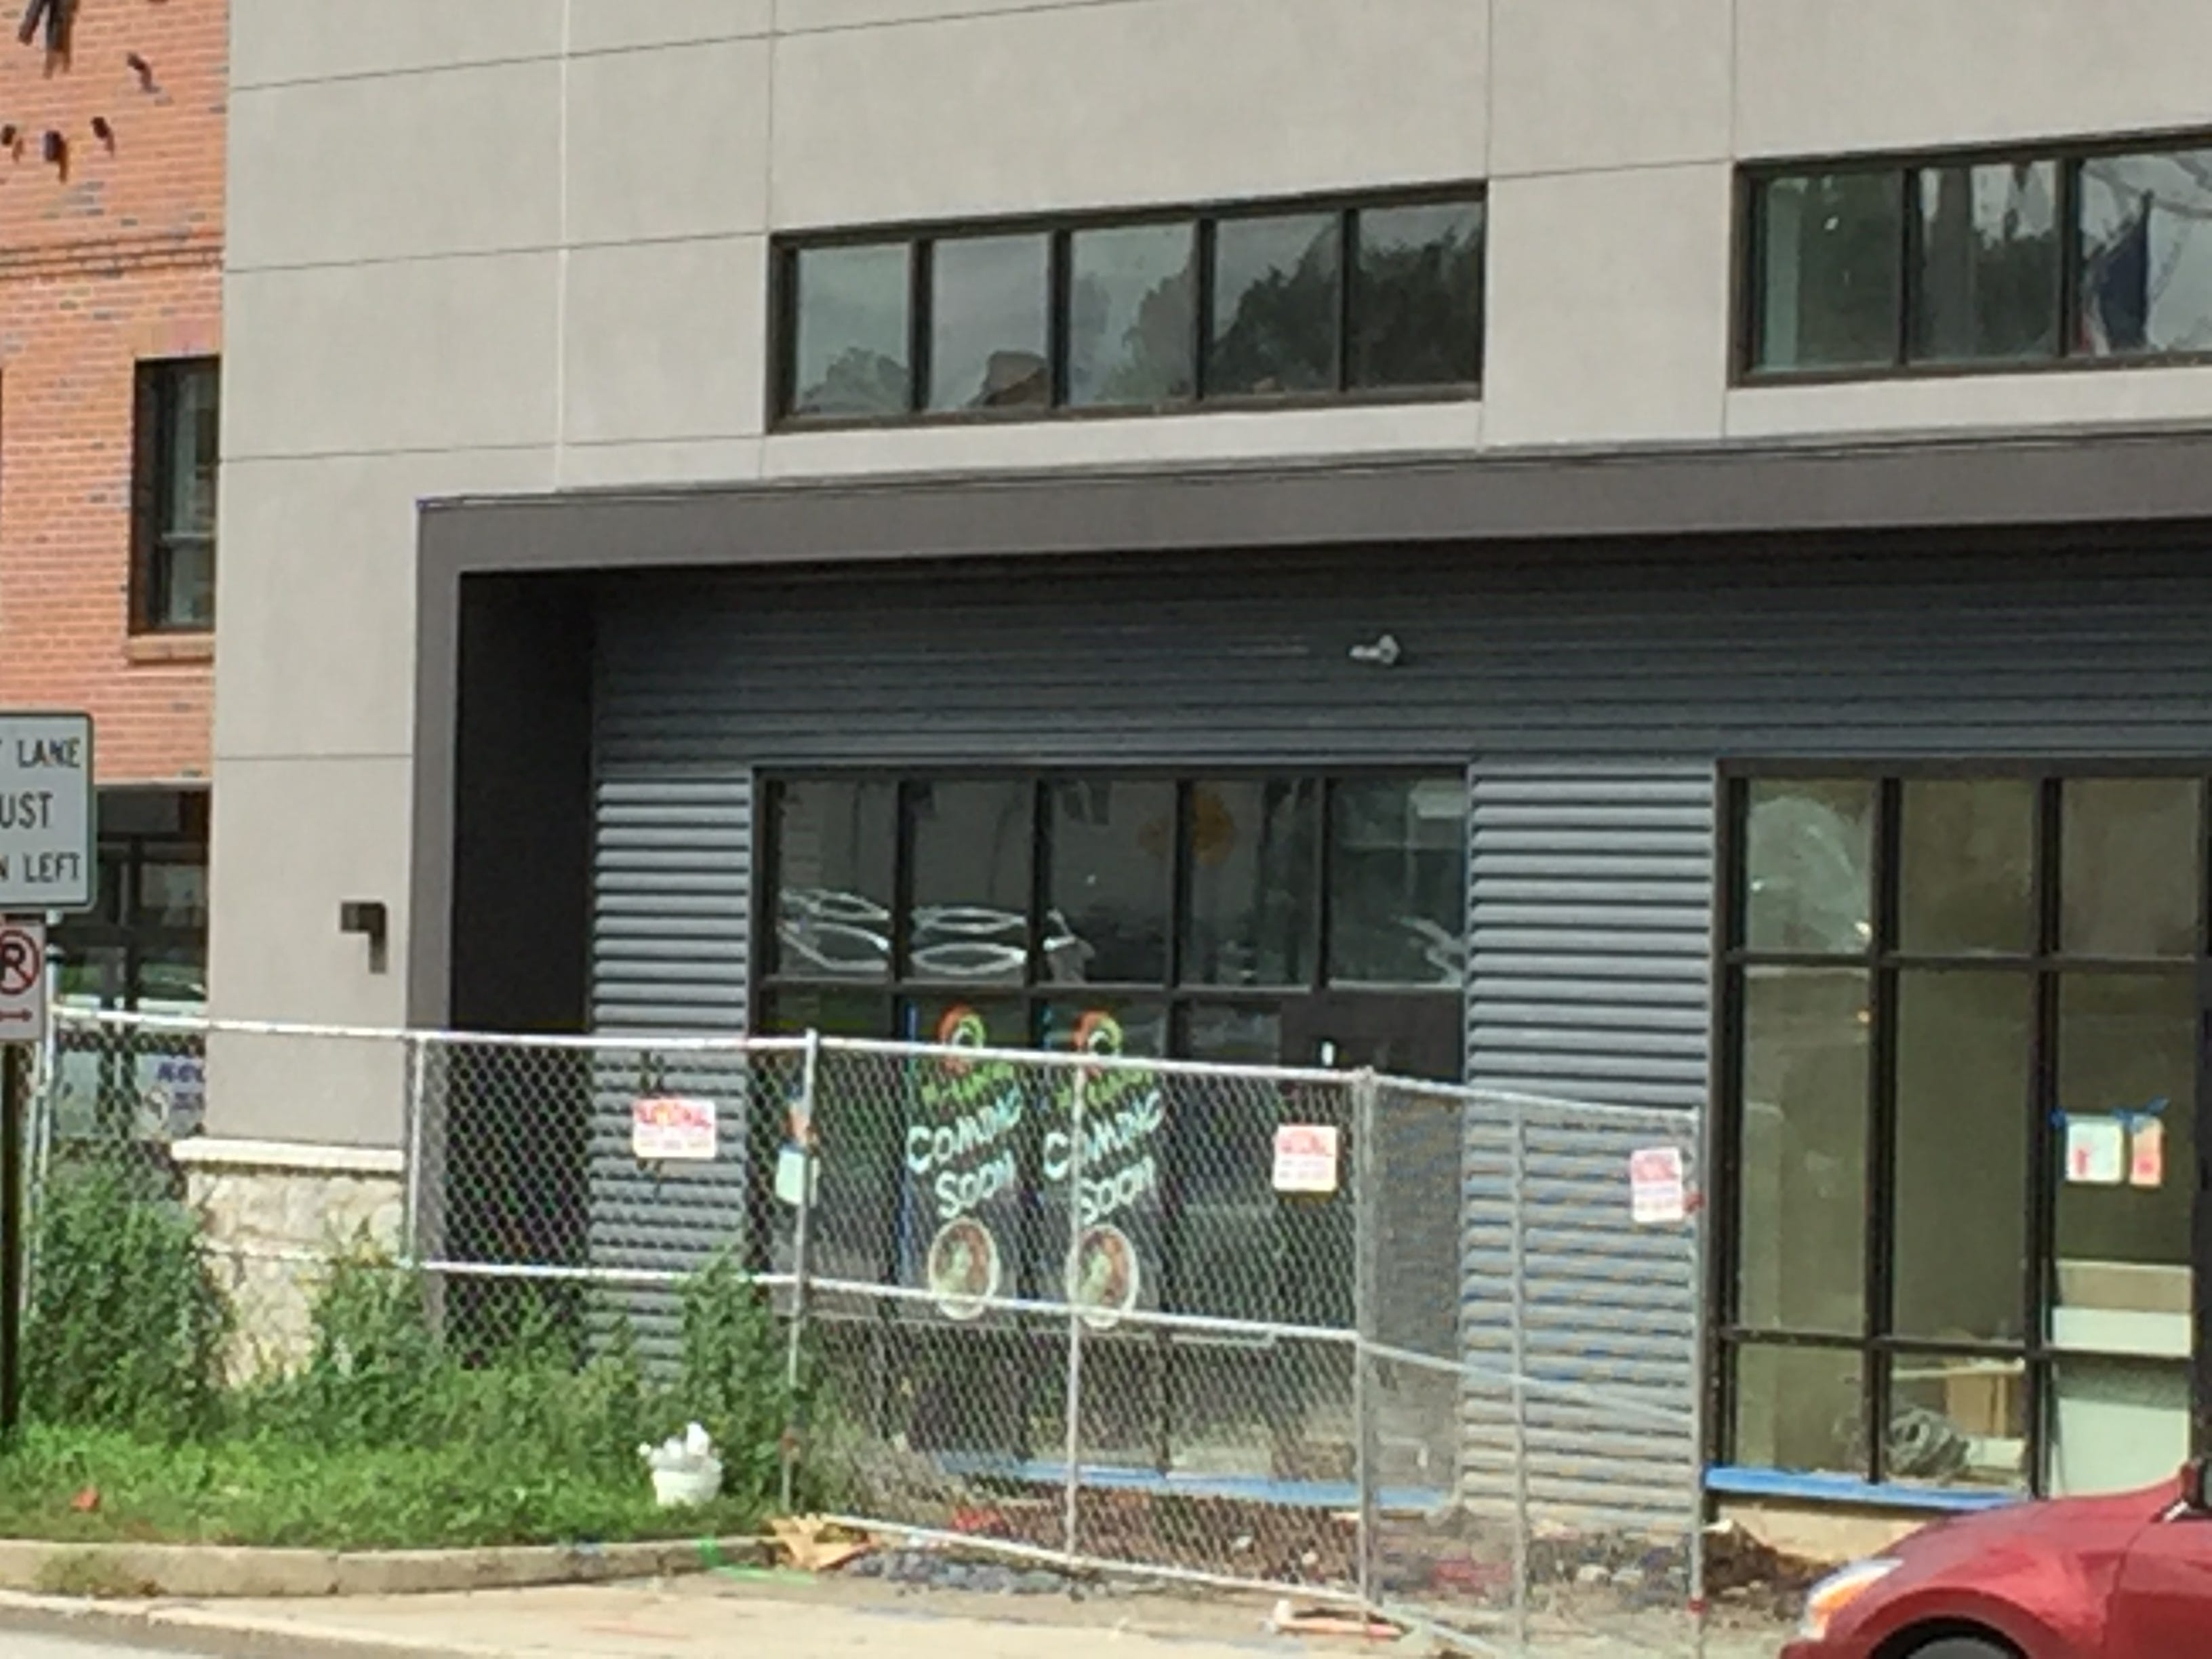 Freshido is already advertising, but how soon the fast casual restaurant will arrive is TBD.